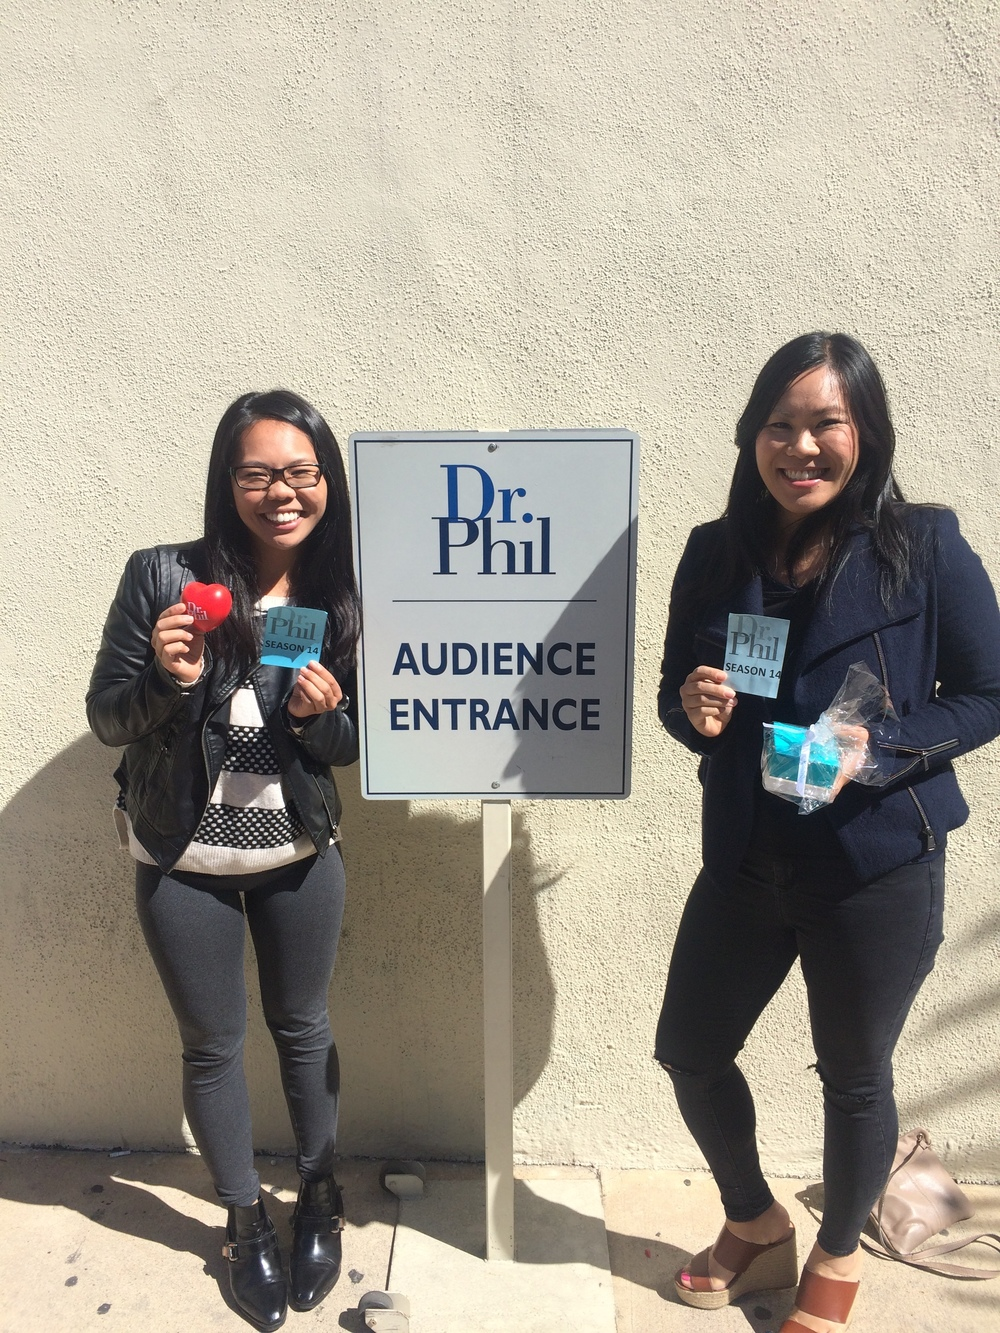 Yep, that's us holding our prized Dr Phil stress ball and anti-ageing jewel drops.